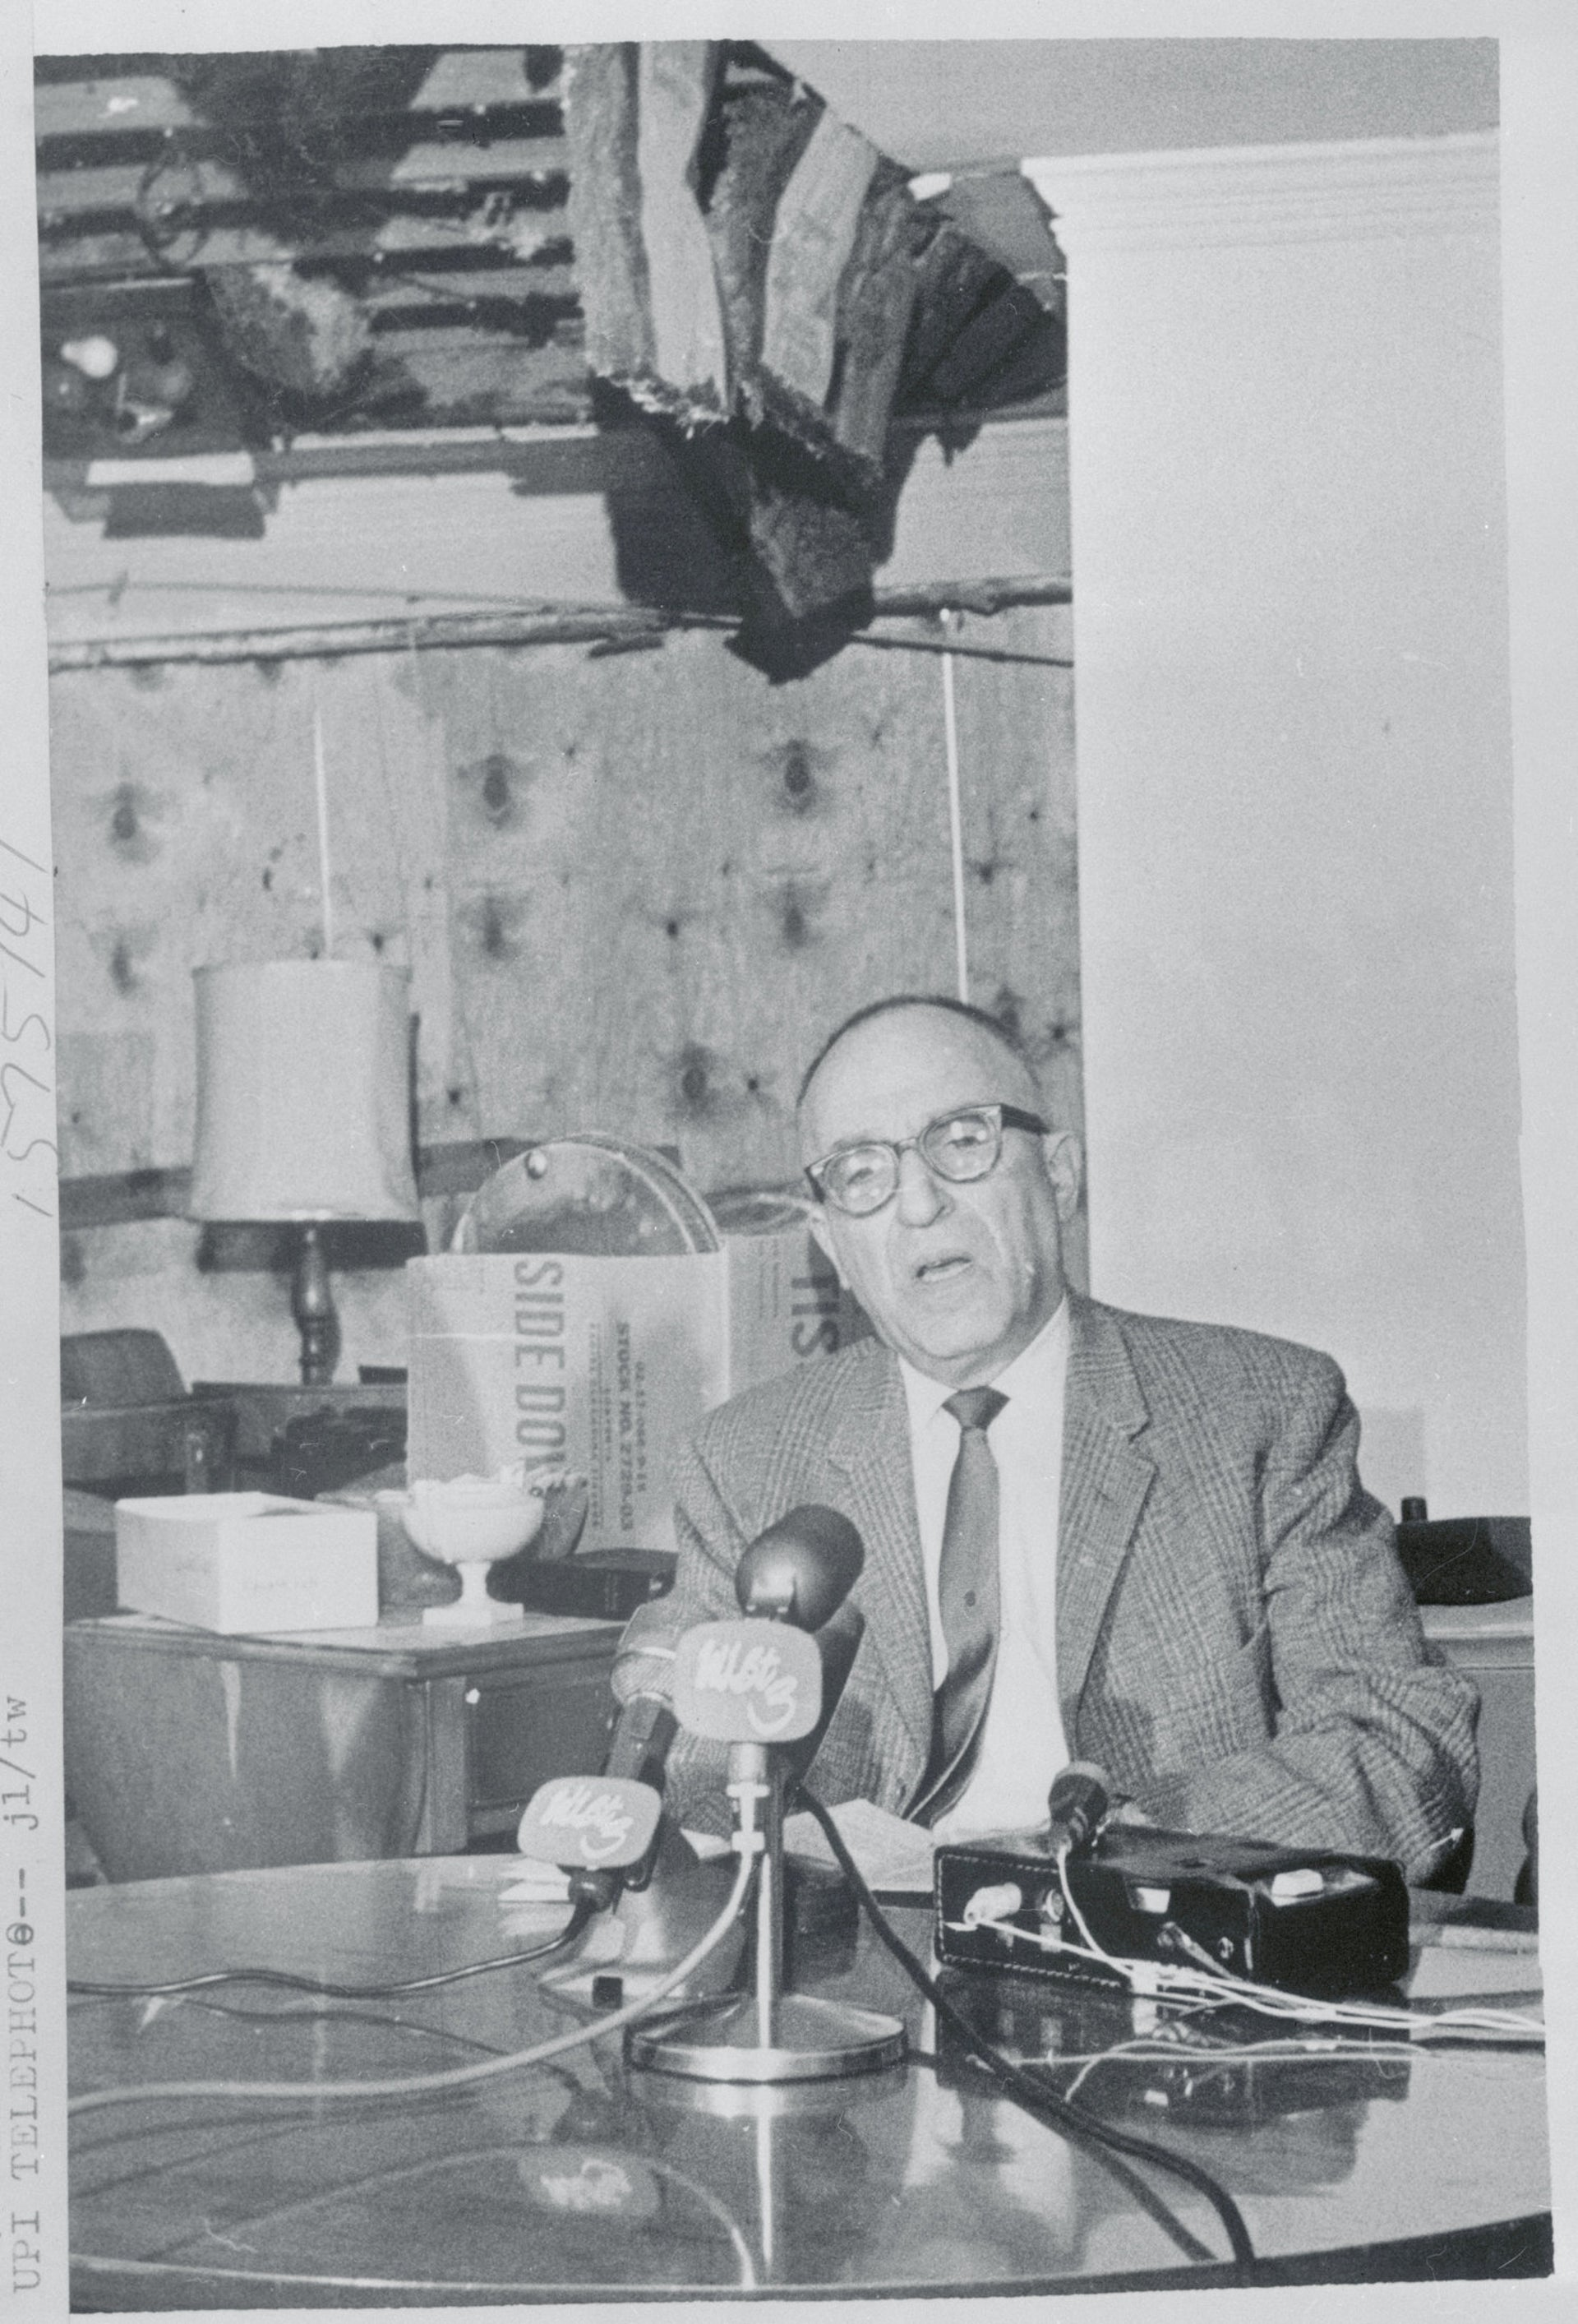 Rabbi Perry Nussbaum talking with newsmen in the living room of his home, which was firebombed on November 21, 1967.